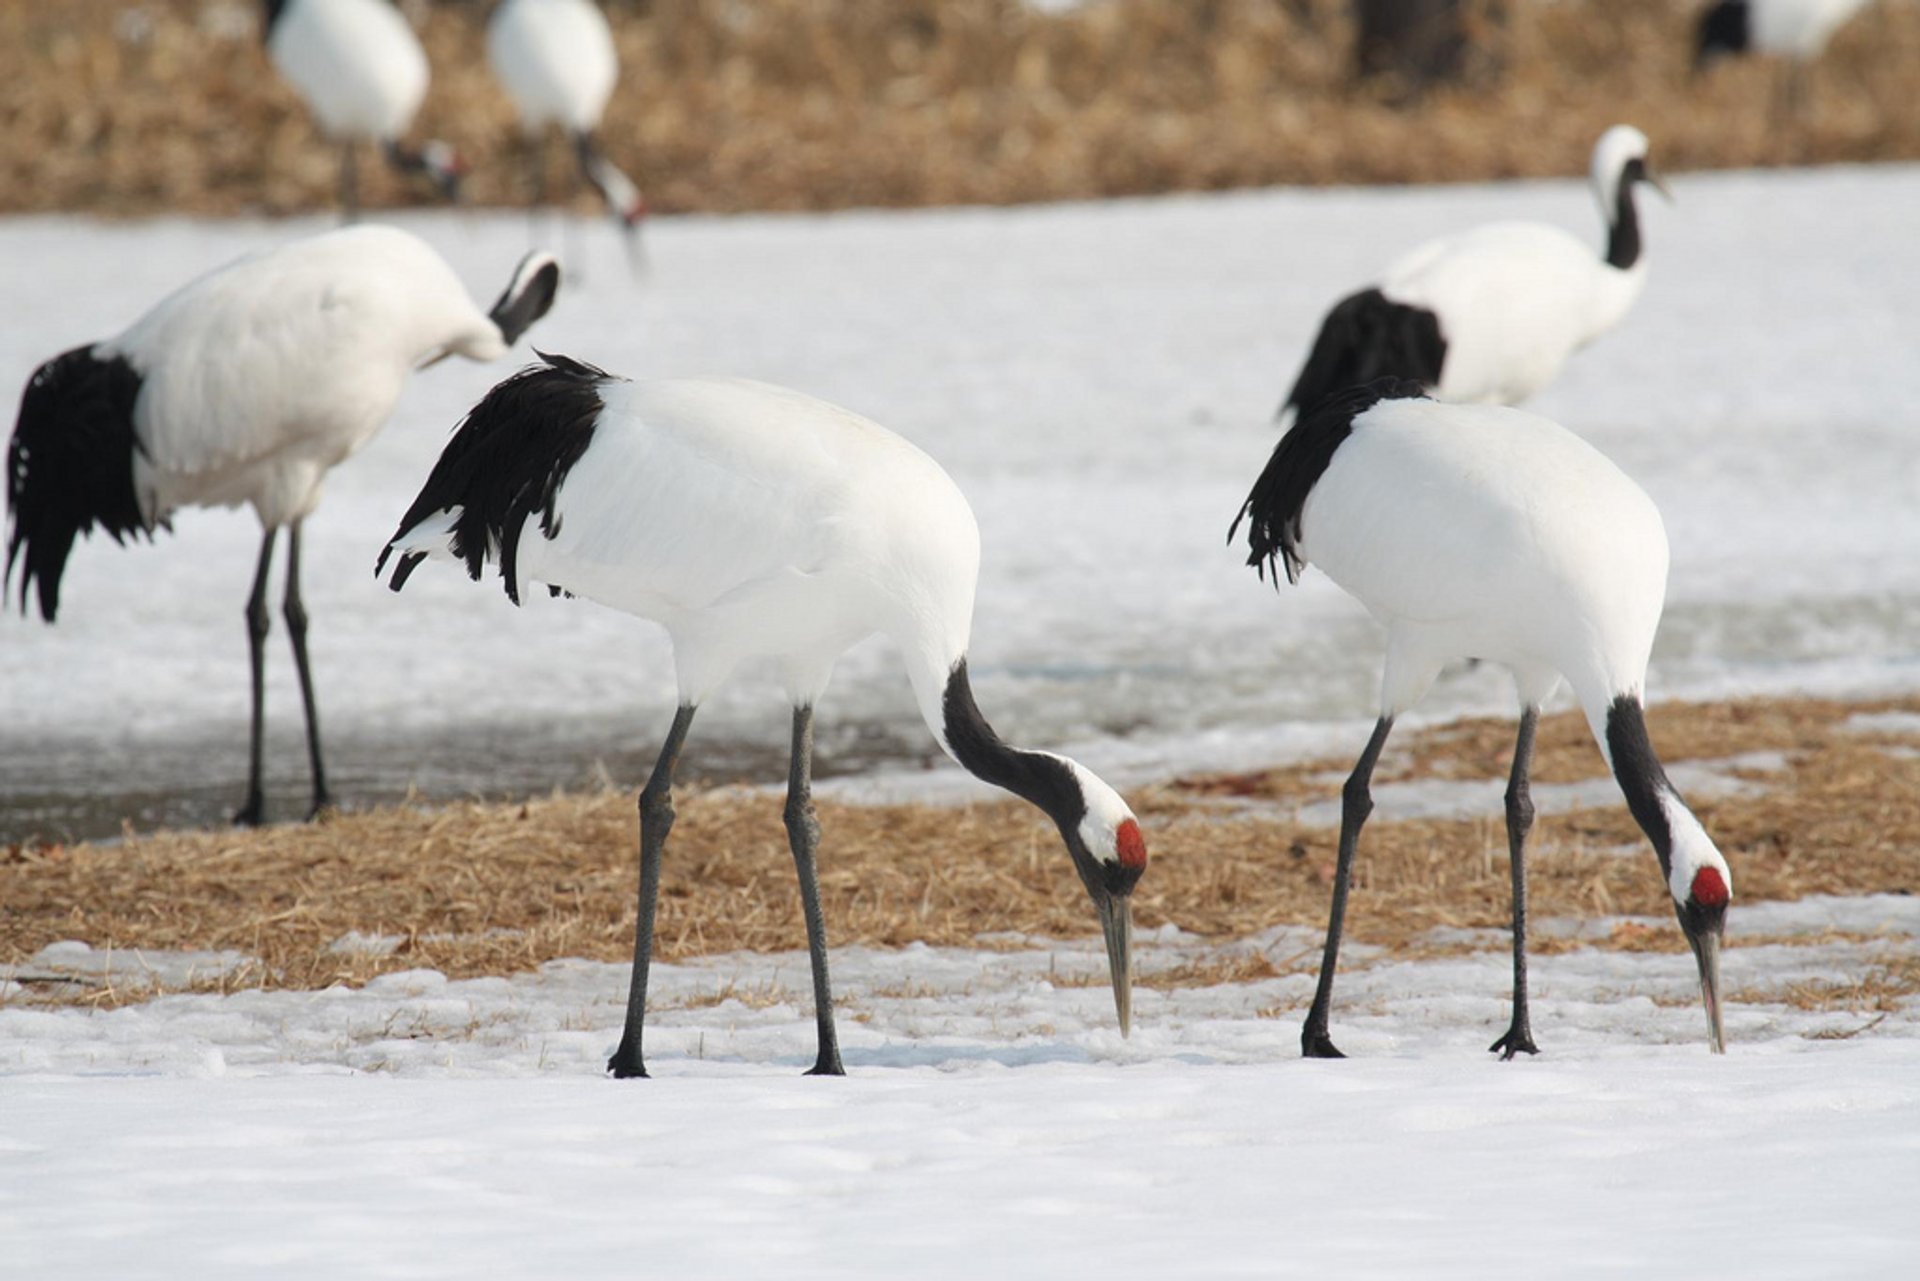 Cranes of Kushiro Marshlands (Winter Feeding Sites) in Japan 2020 - Best Time